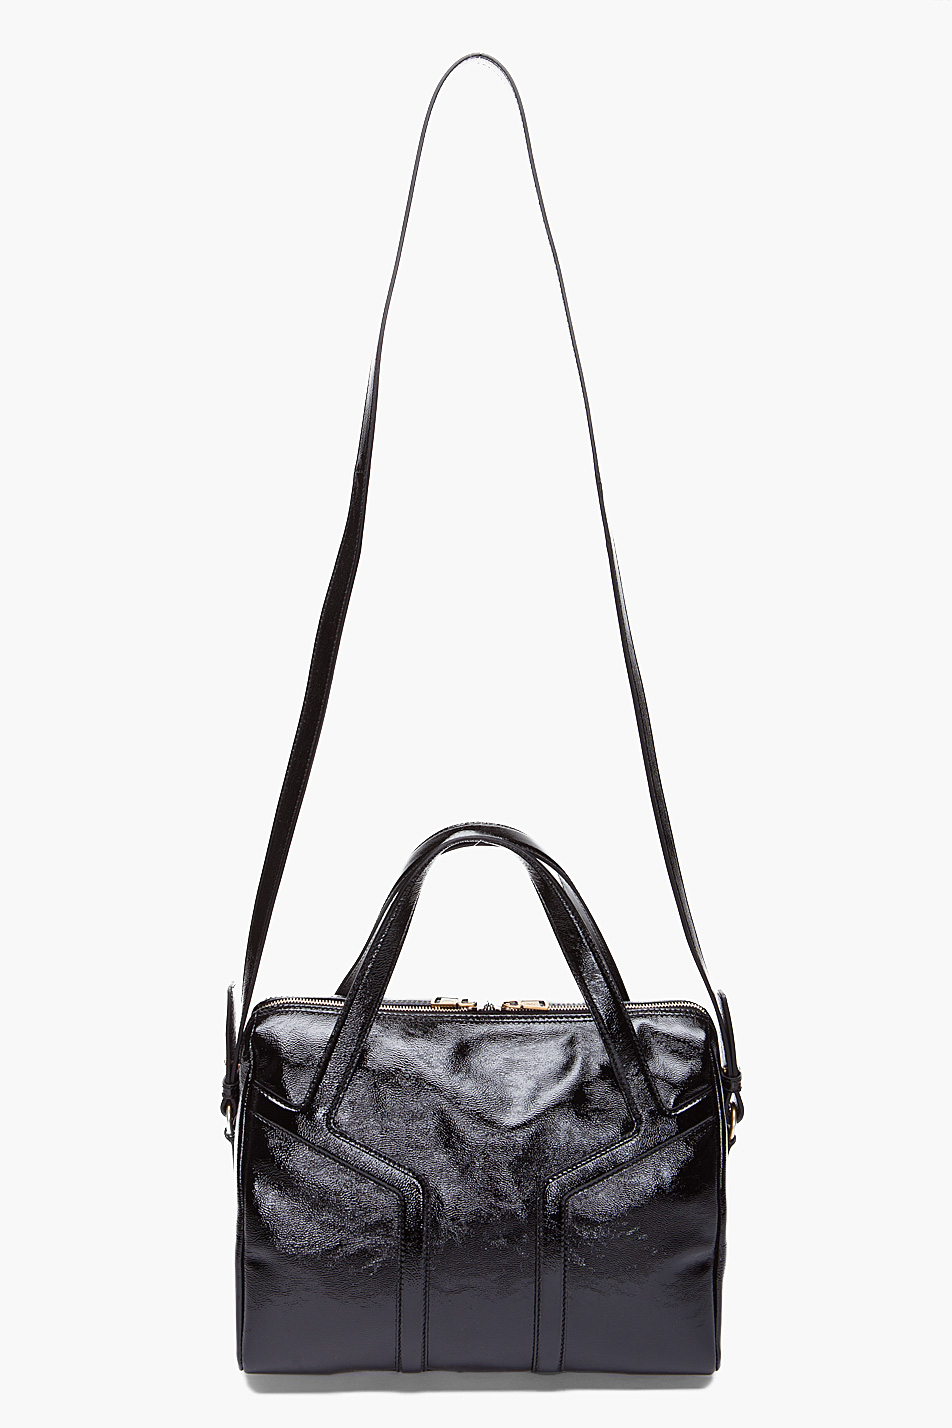 Yves Saint Laurent Monogram West Hollywood Shoulder Bag